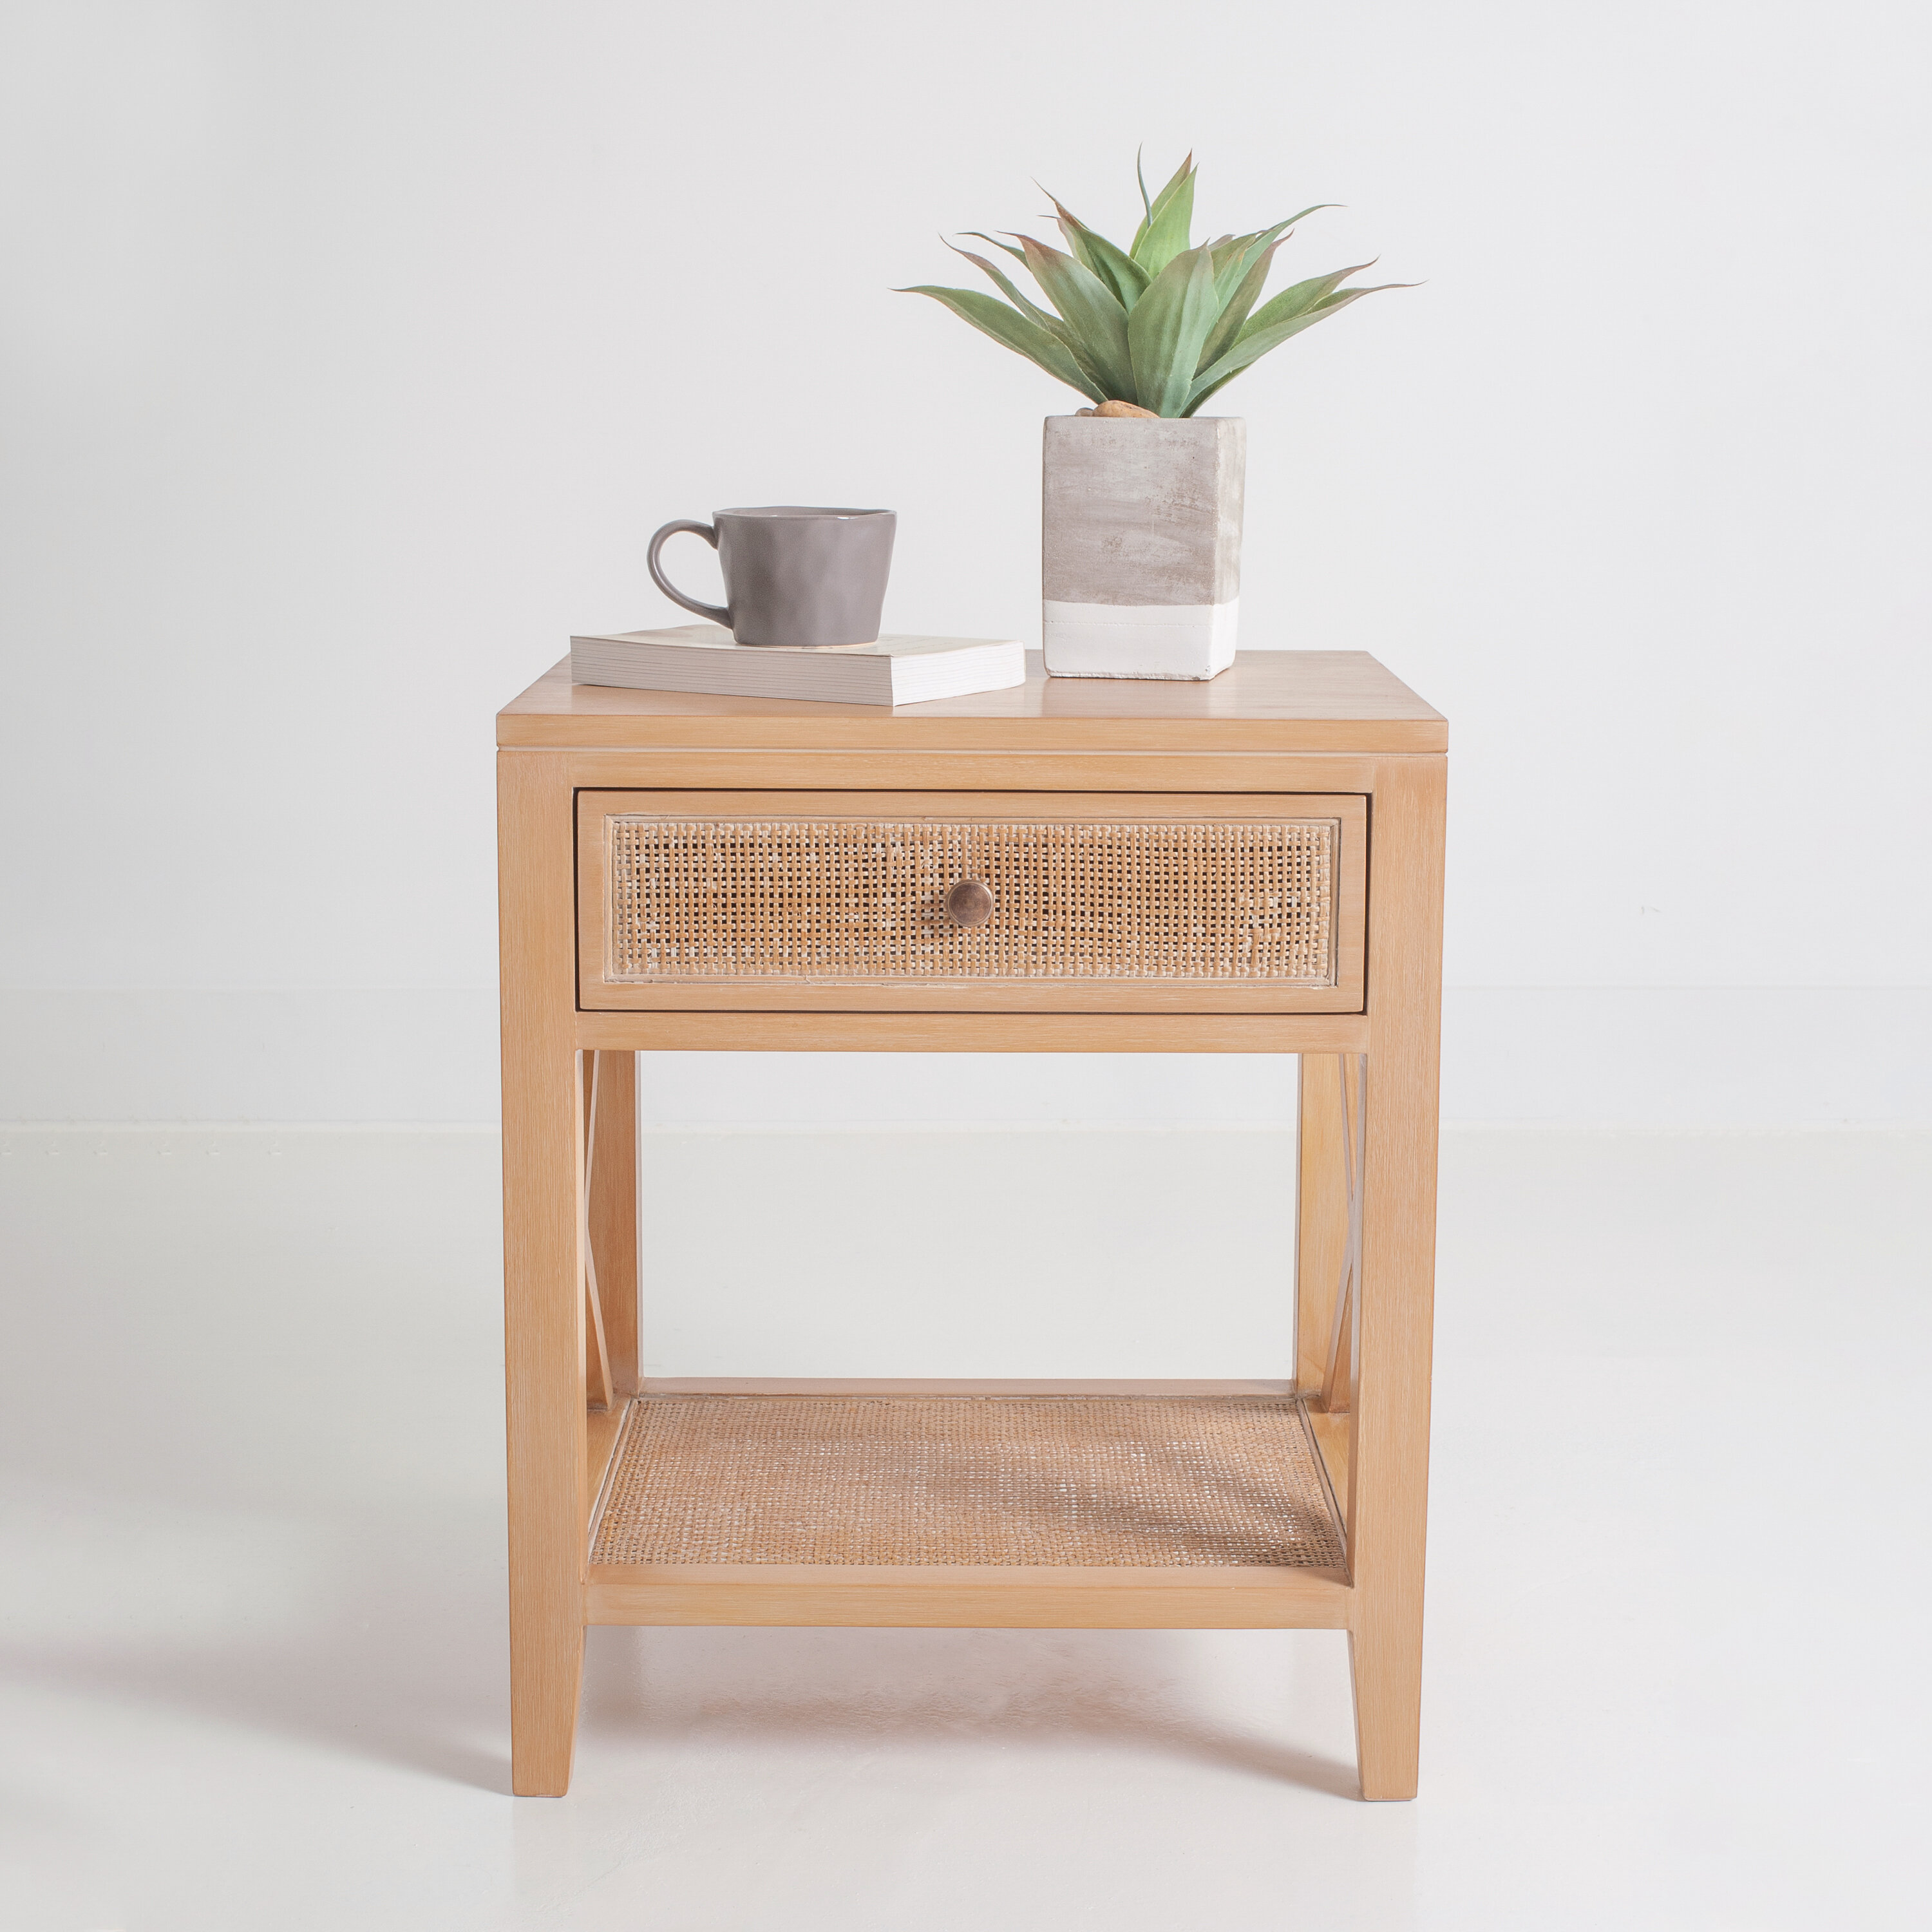 1 Drawer End Table With Storage Reviews Joss Main